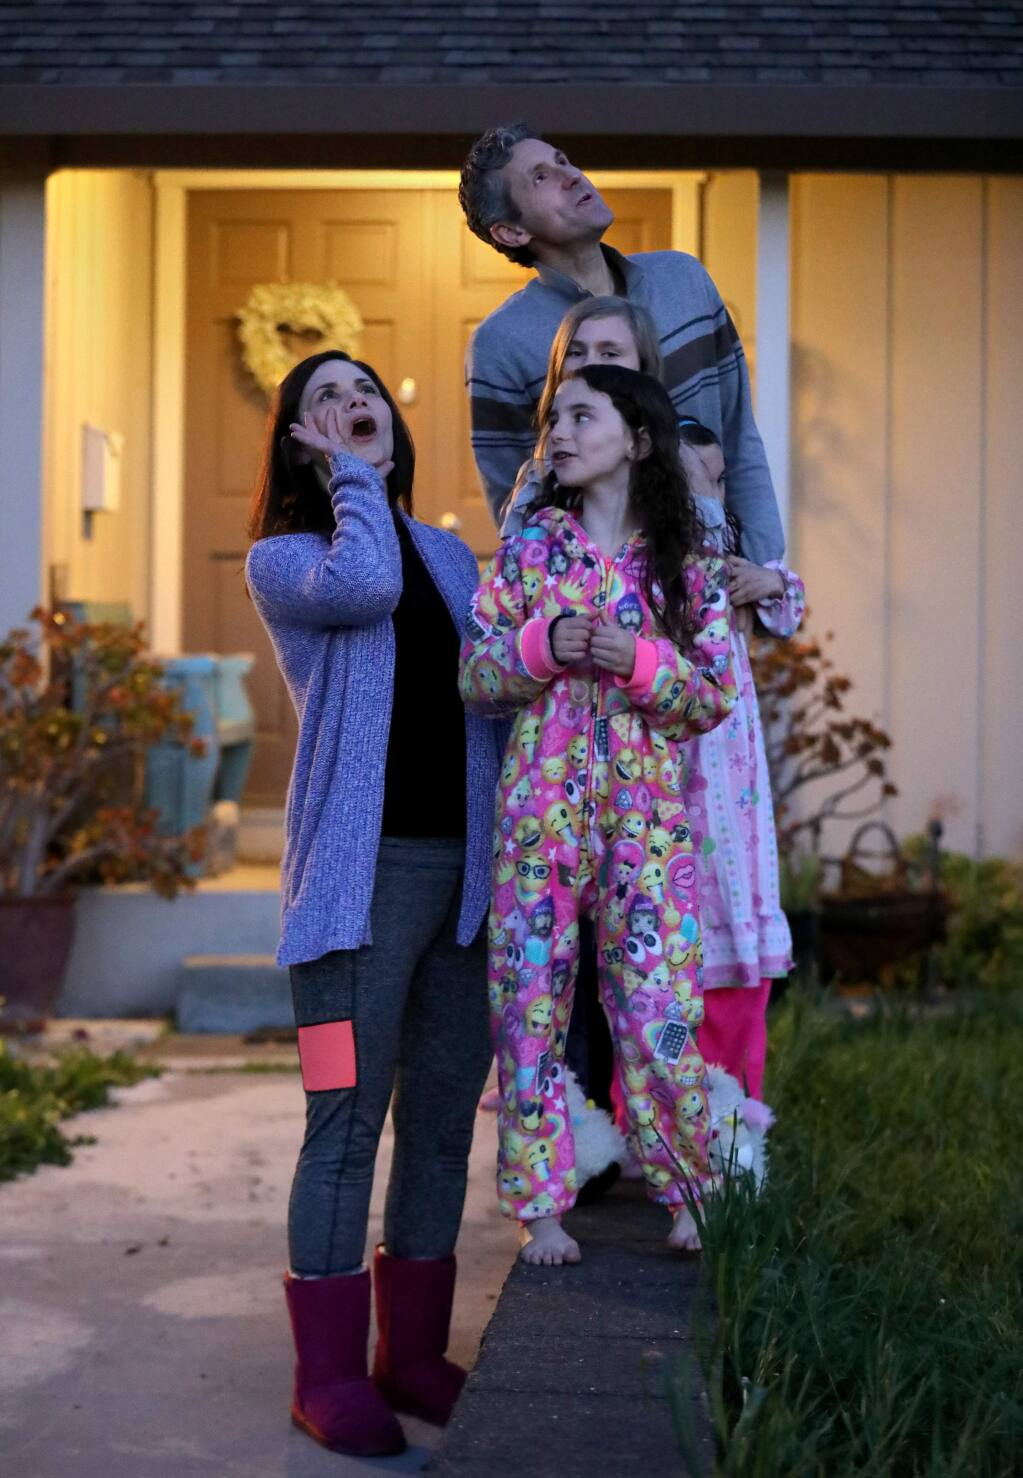 Noelle Mullen, her daughters Tatum, 8, front, Willow, 11, and Fallon, 8, (not seen) and her husband, Dan, join with neighbors and howl outside their home at 8pm in Petaluma on Tuesday, April 7, 2020. (BETH SCHLANKER/ The Press Democrat)